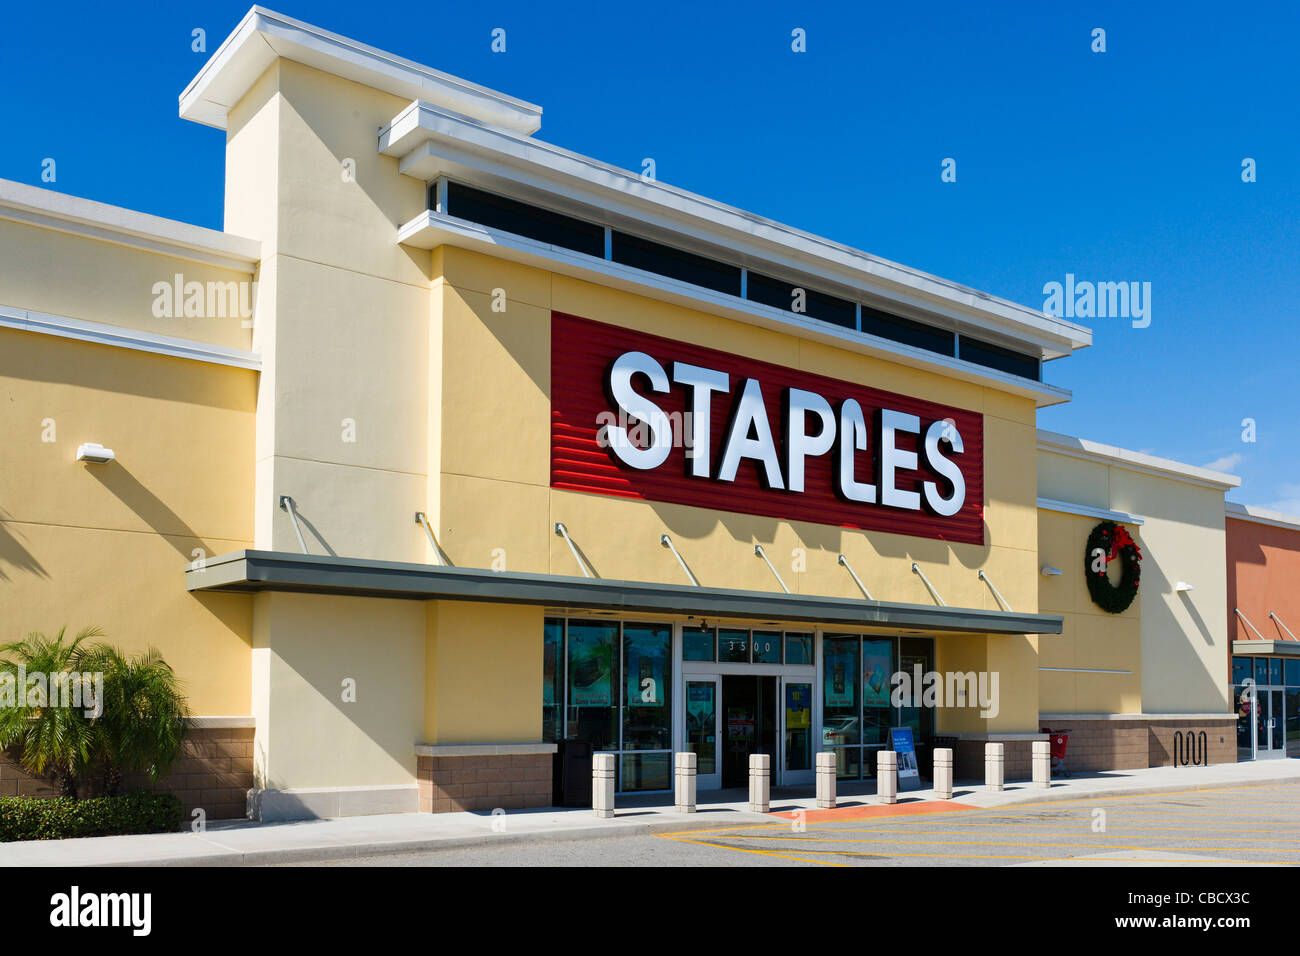 Staples Office Supply Store At Posner Park Retail Development, Davenport,  Central Florida, USA